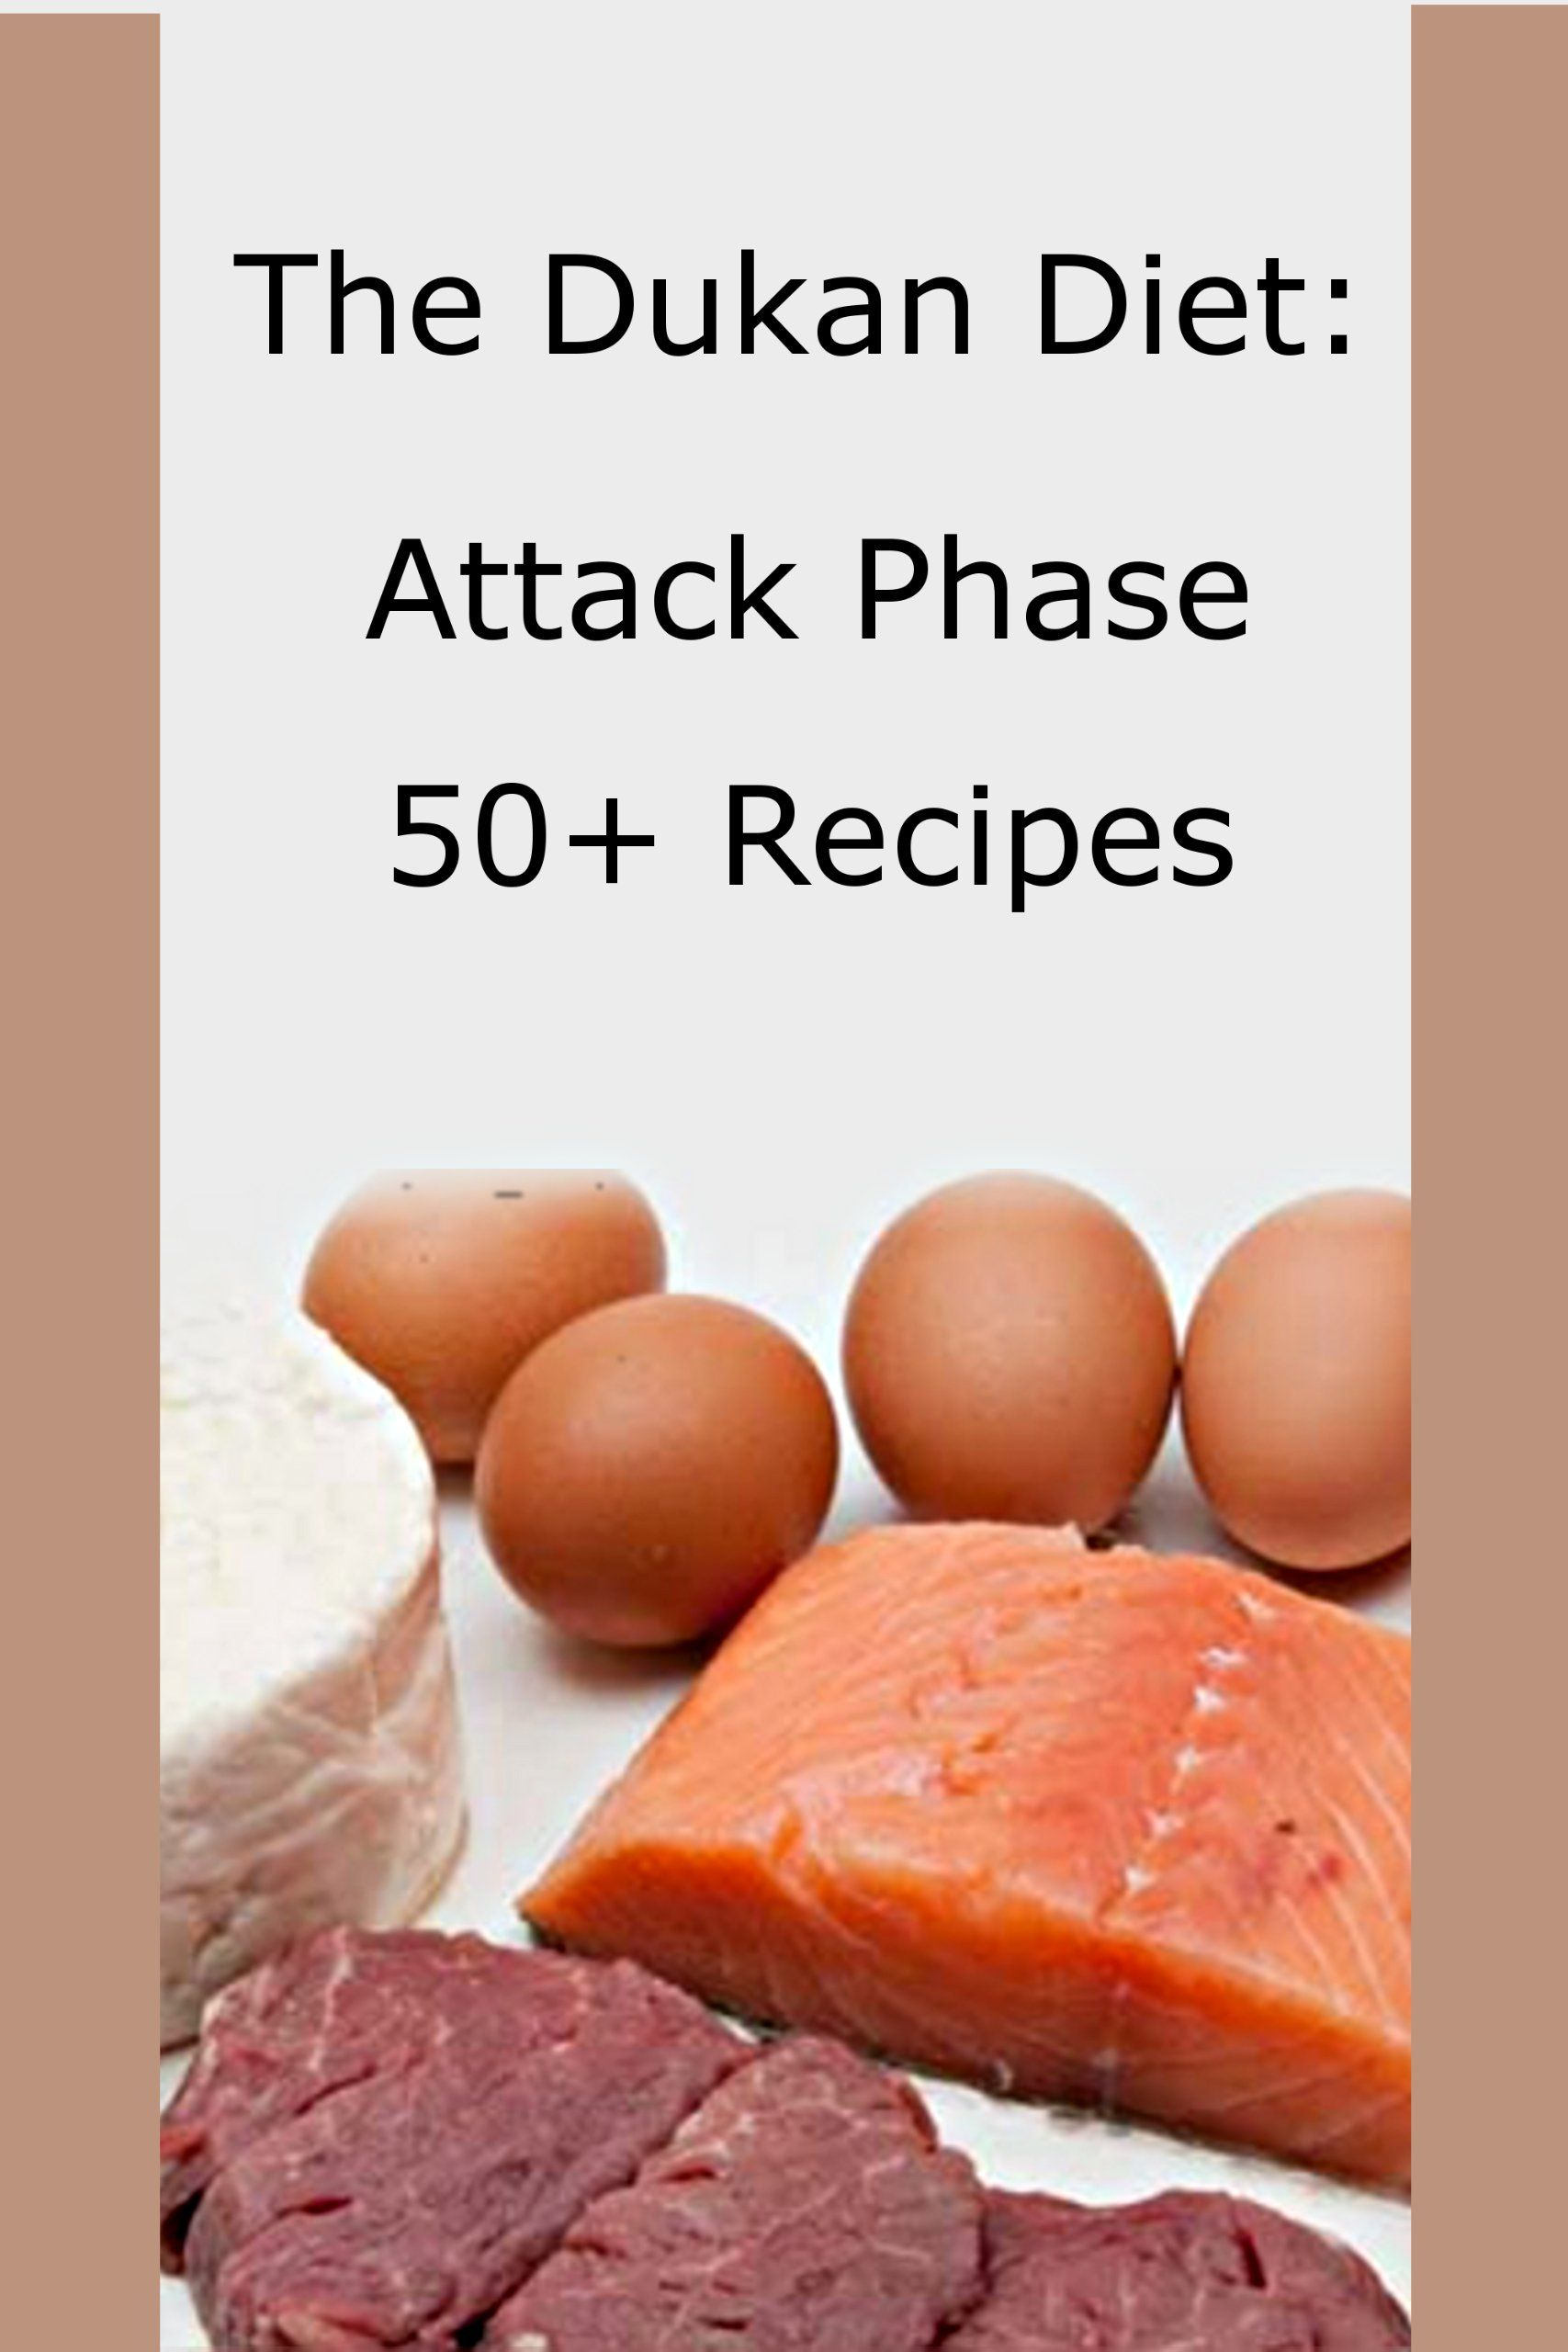 dukan diet recipes: 50+ attack phase recipes and food lists | dukan